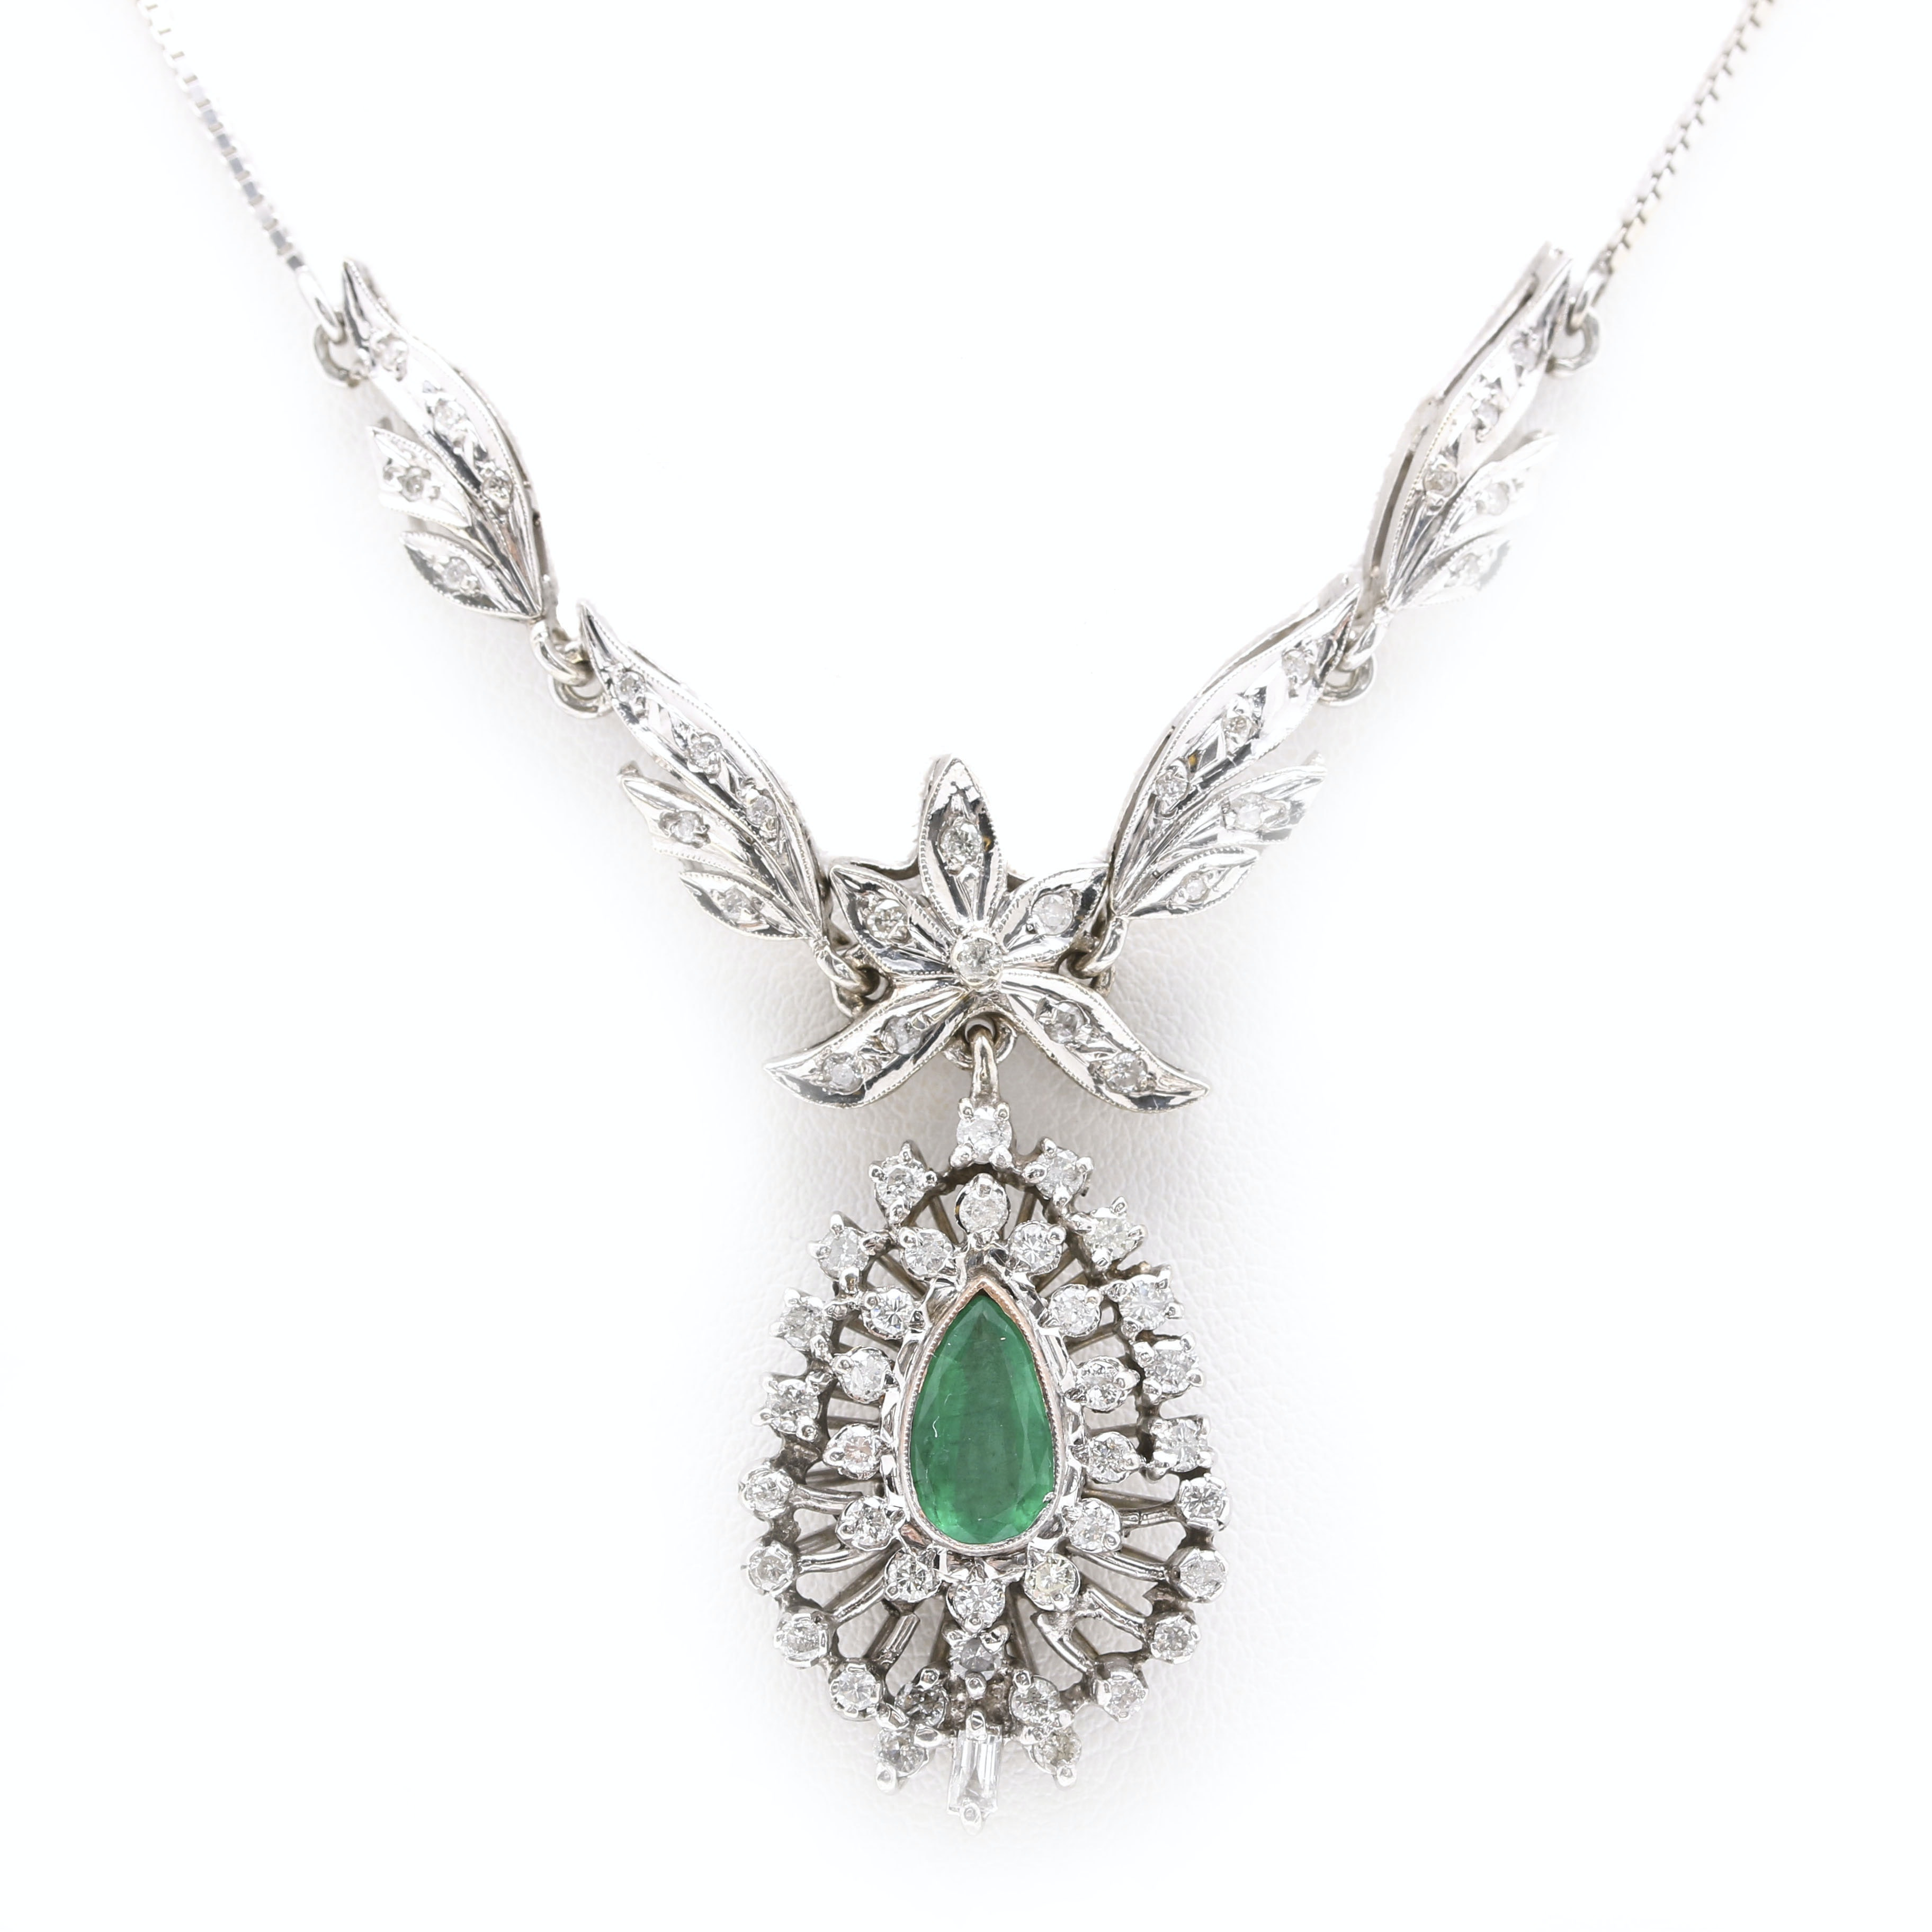 10K and 18K White Gold Emerald and 1.54 CTW Diamond Necklace